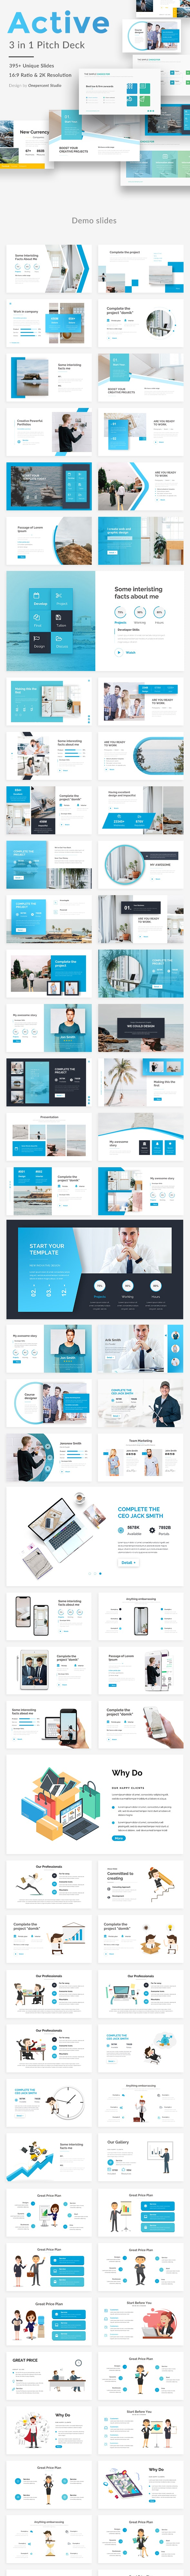 Active 3 in 1 Keynote Bundle Template - Creative Keynote Templates